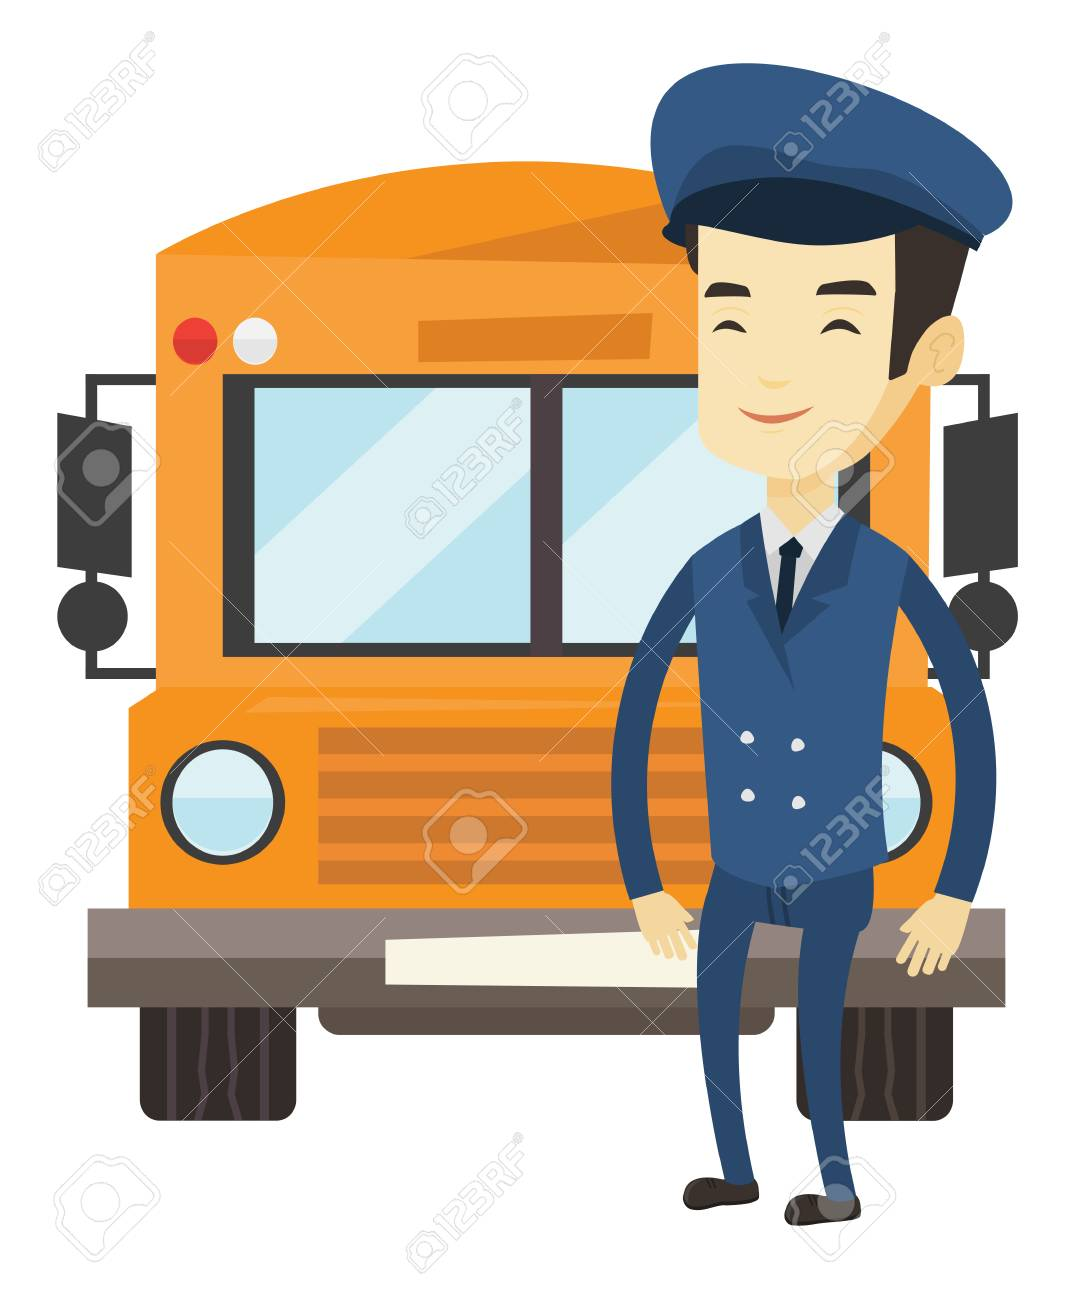 Young asian school bus driver standing in front of yellow bus.